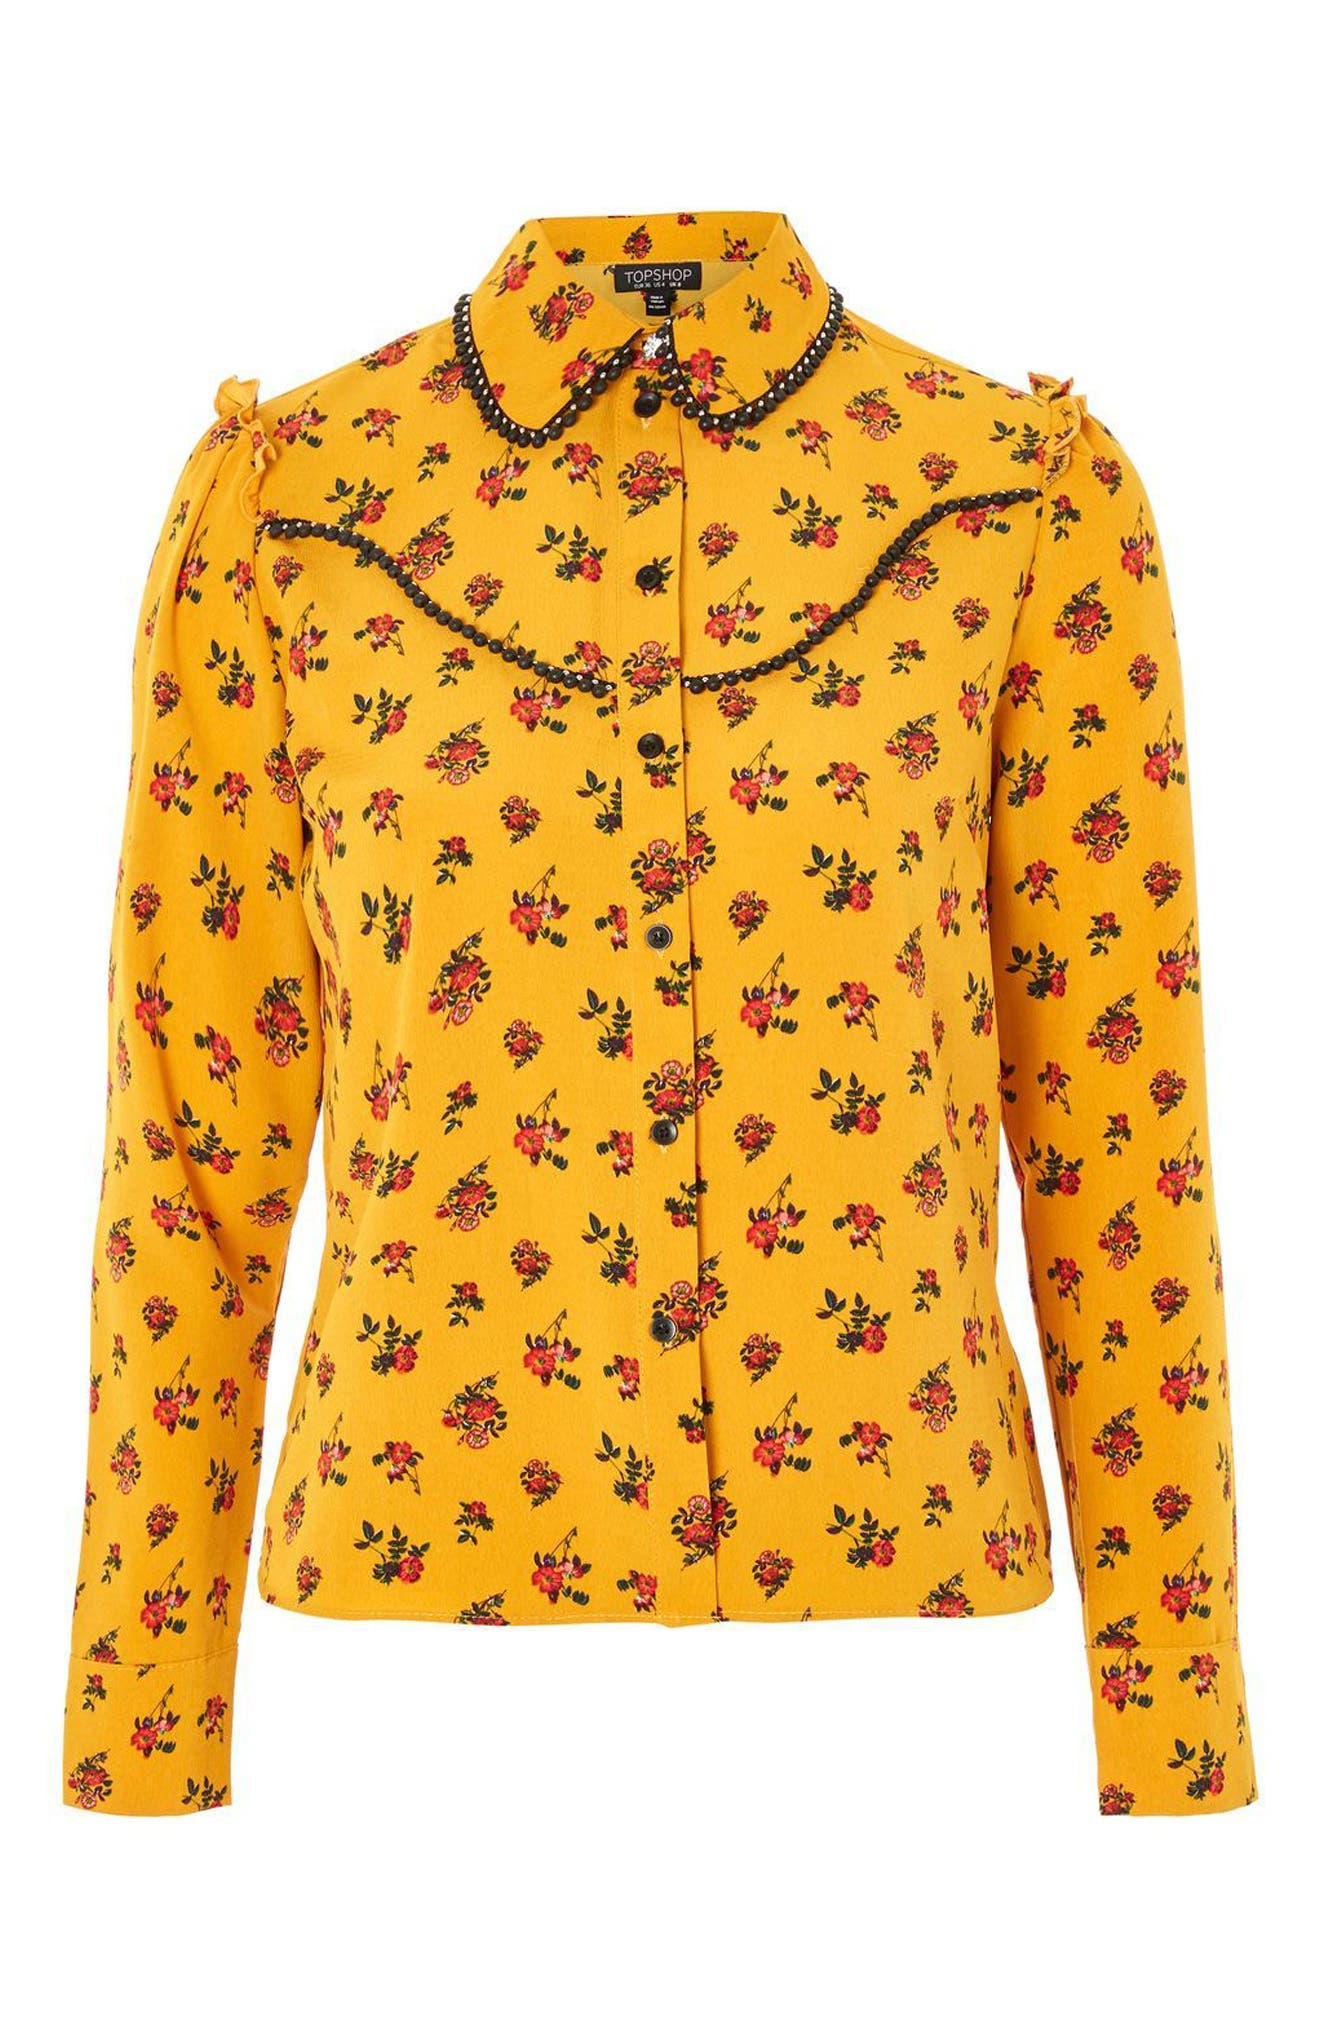 Rodeo Floral Retro Shirt,                             Alternate thumbnail 4, color,                             701